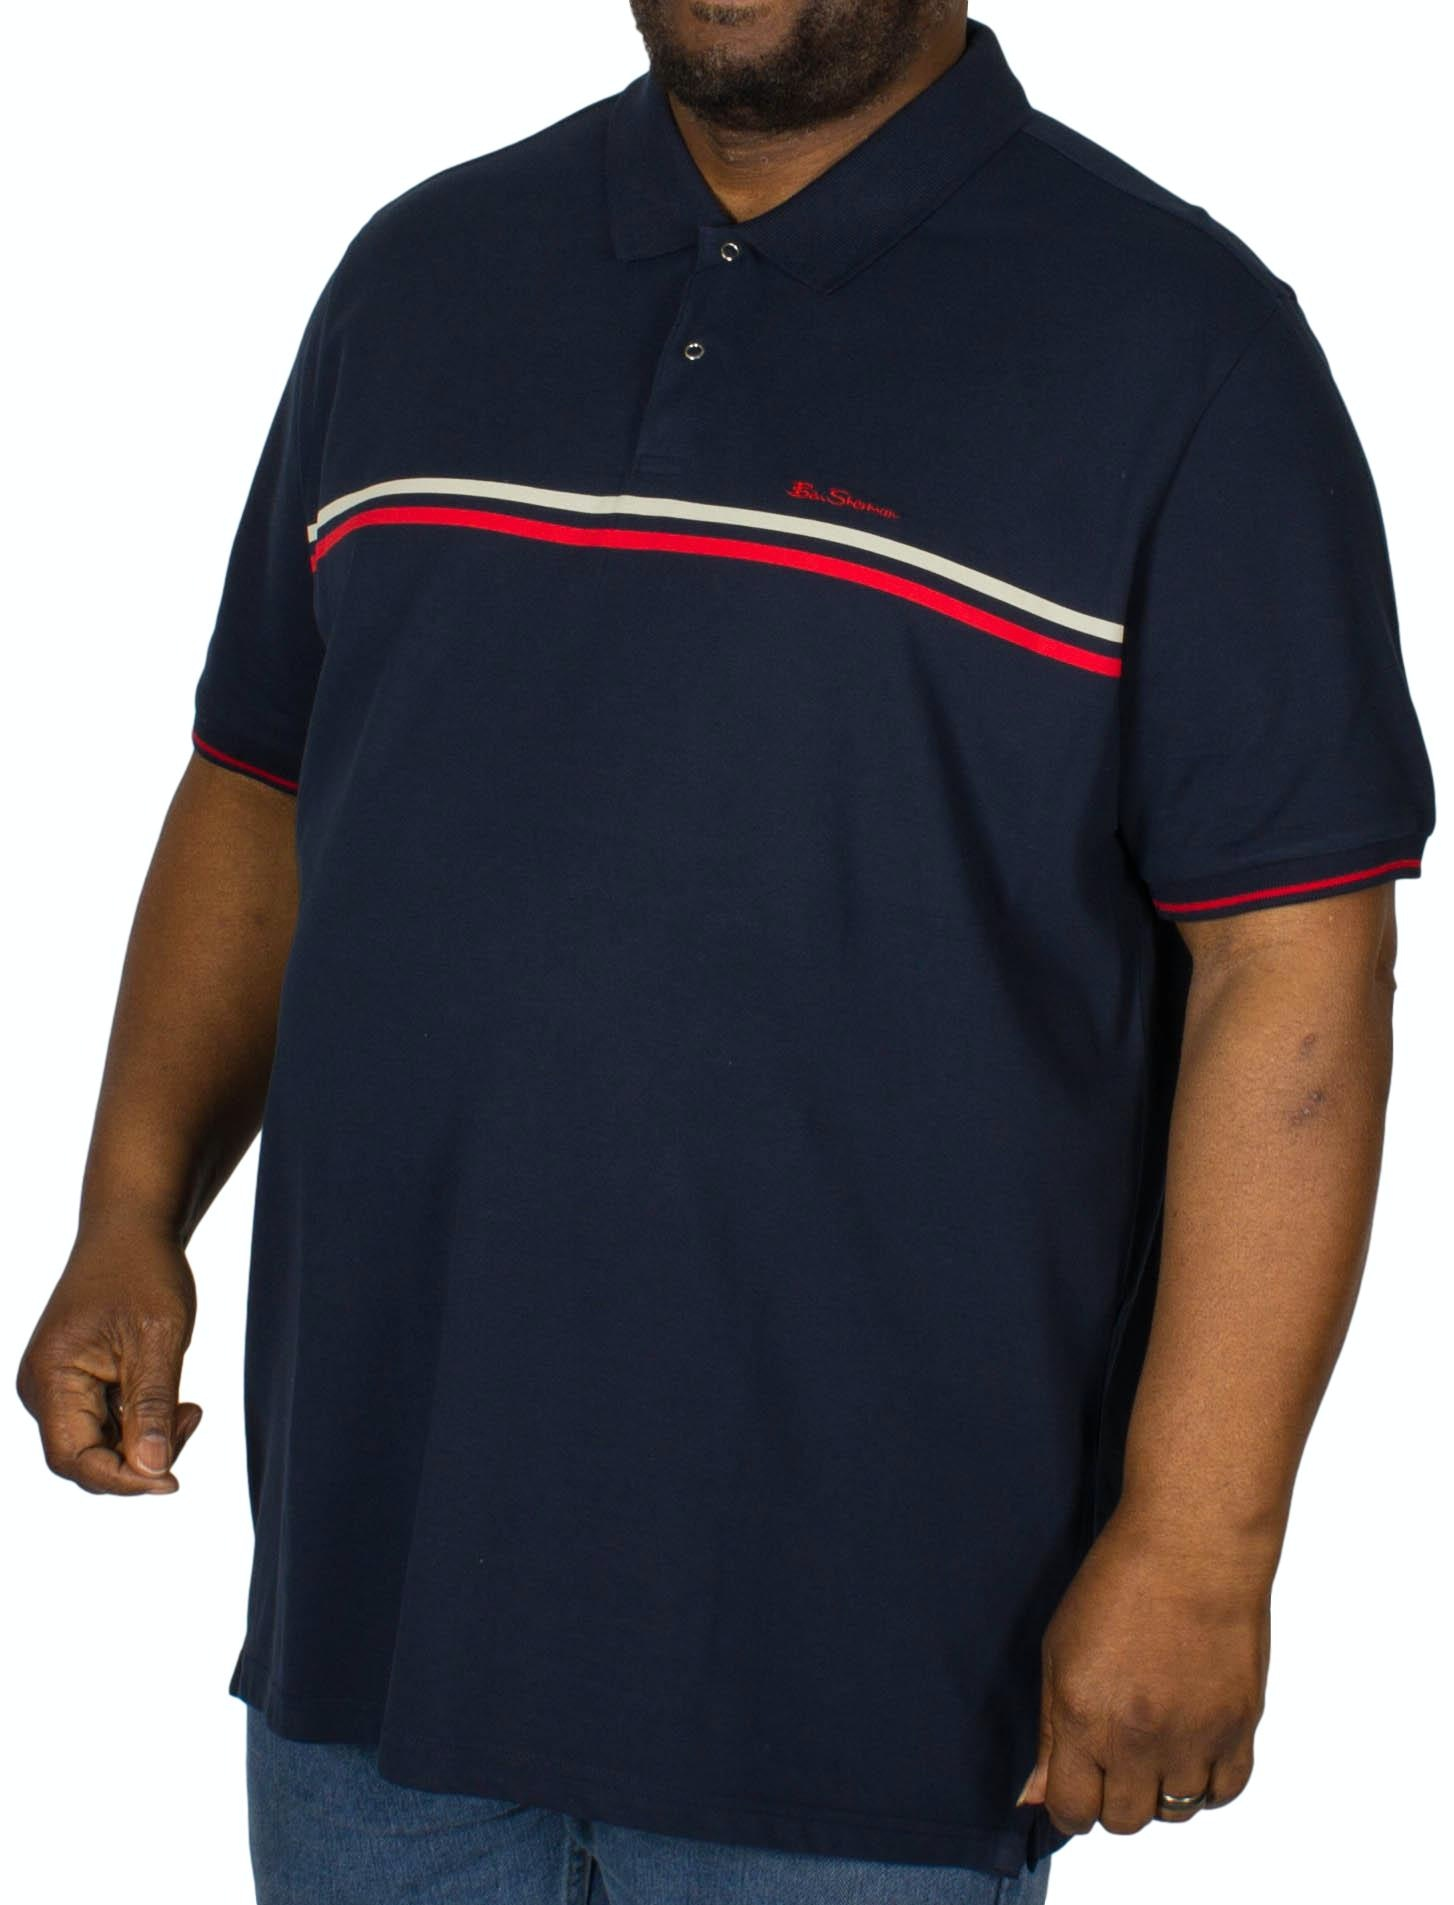 Ben Sherman Retro Sport Tipped Polo Shirt Navy